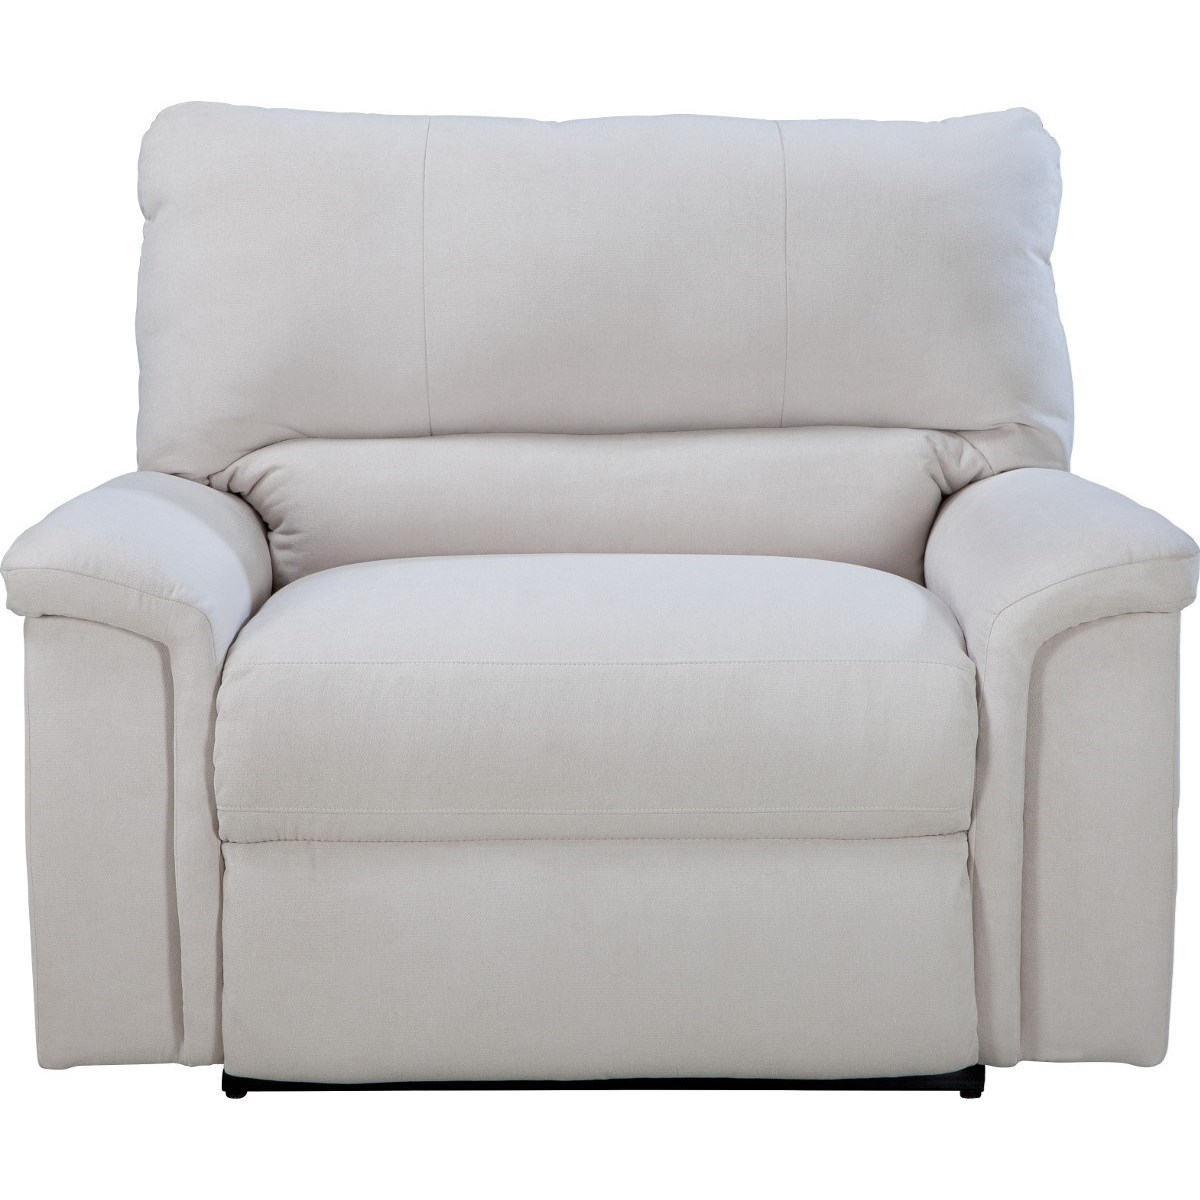 ASPEN La-Z-Time® Recliner by La-Z-Boy at Home Furnishings Direct